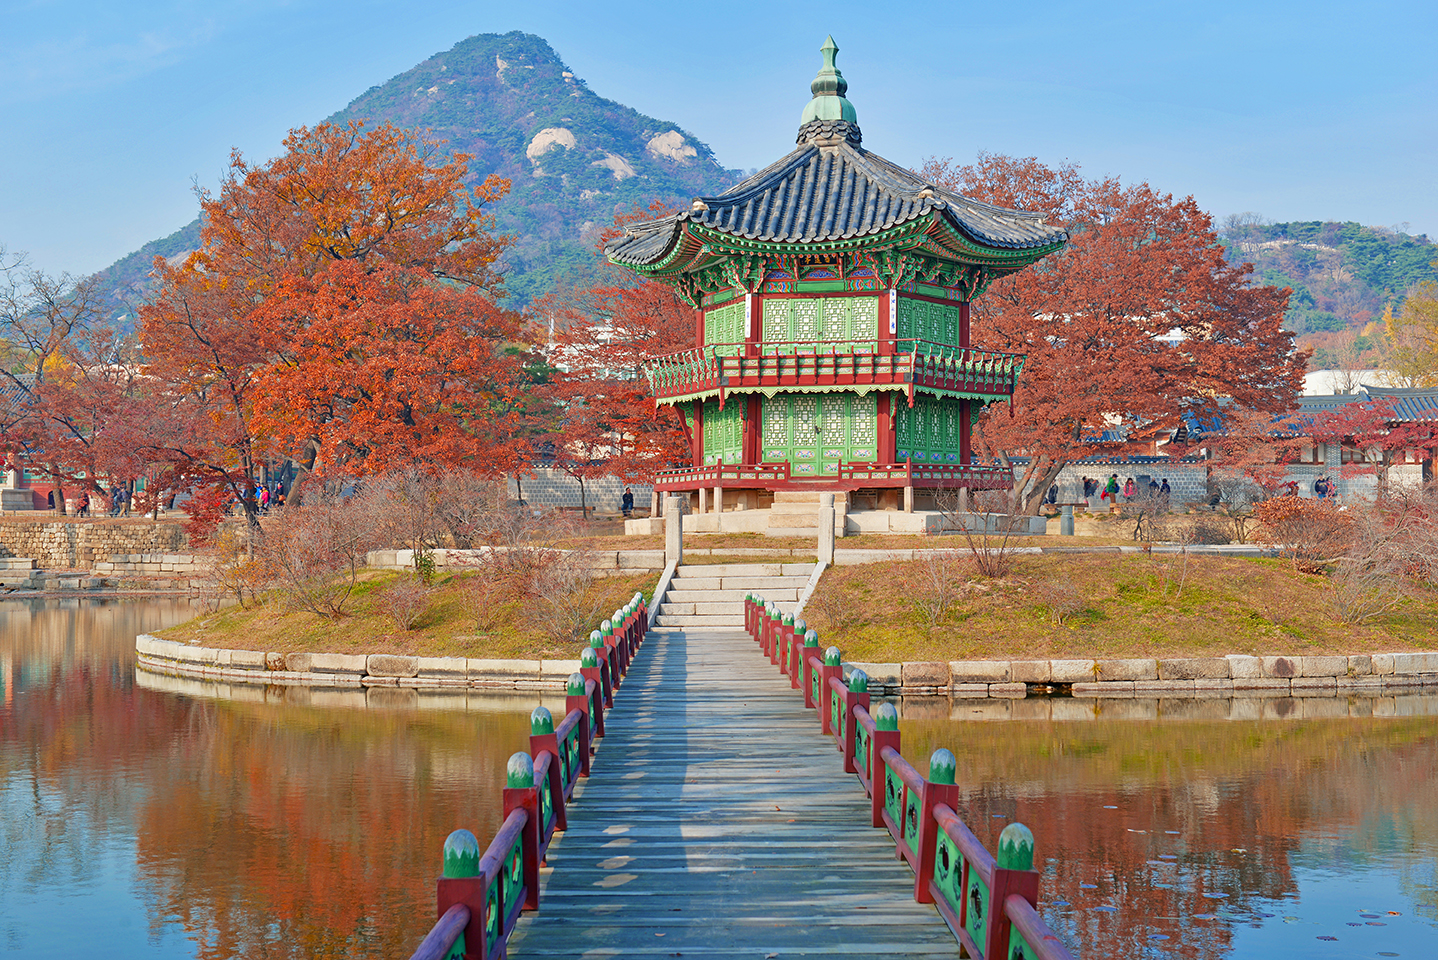 Starting Our List Is Seoul One Of The Biggest Cities In Korea Has A Vibrant Culture And Known For Its Spicy Food Equally Nightlife